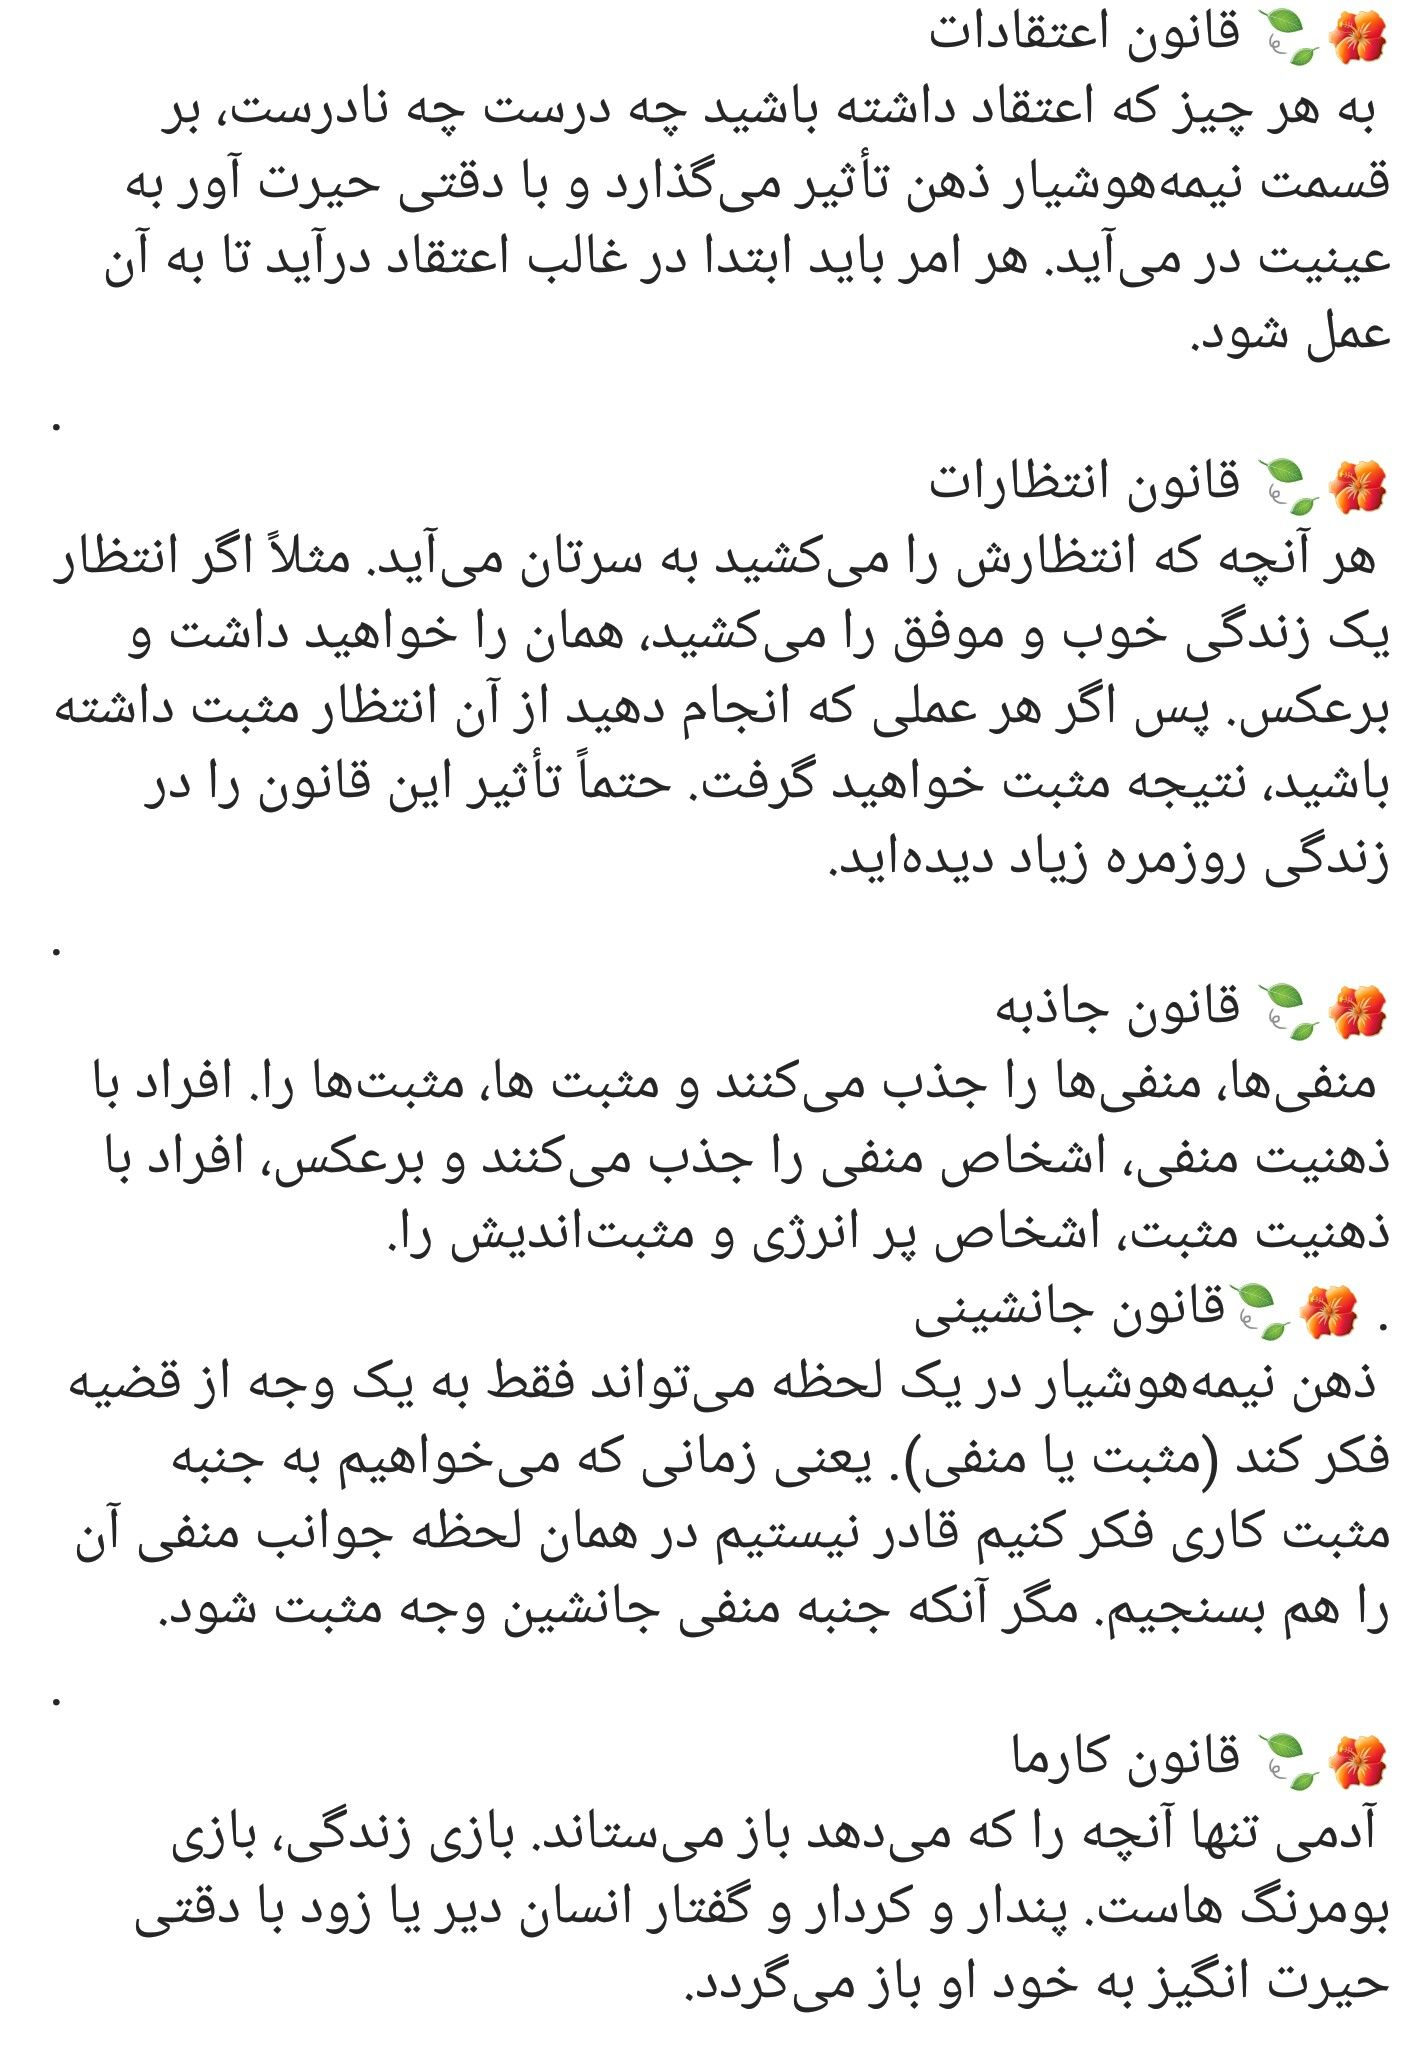 Pin By Telma On نوشته هاى زيبا Persian Quotes True Quotes Words